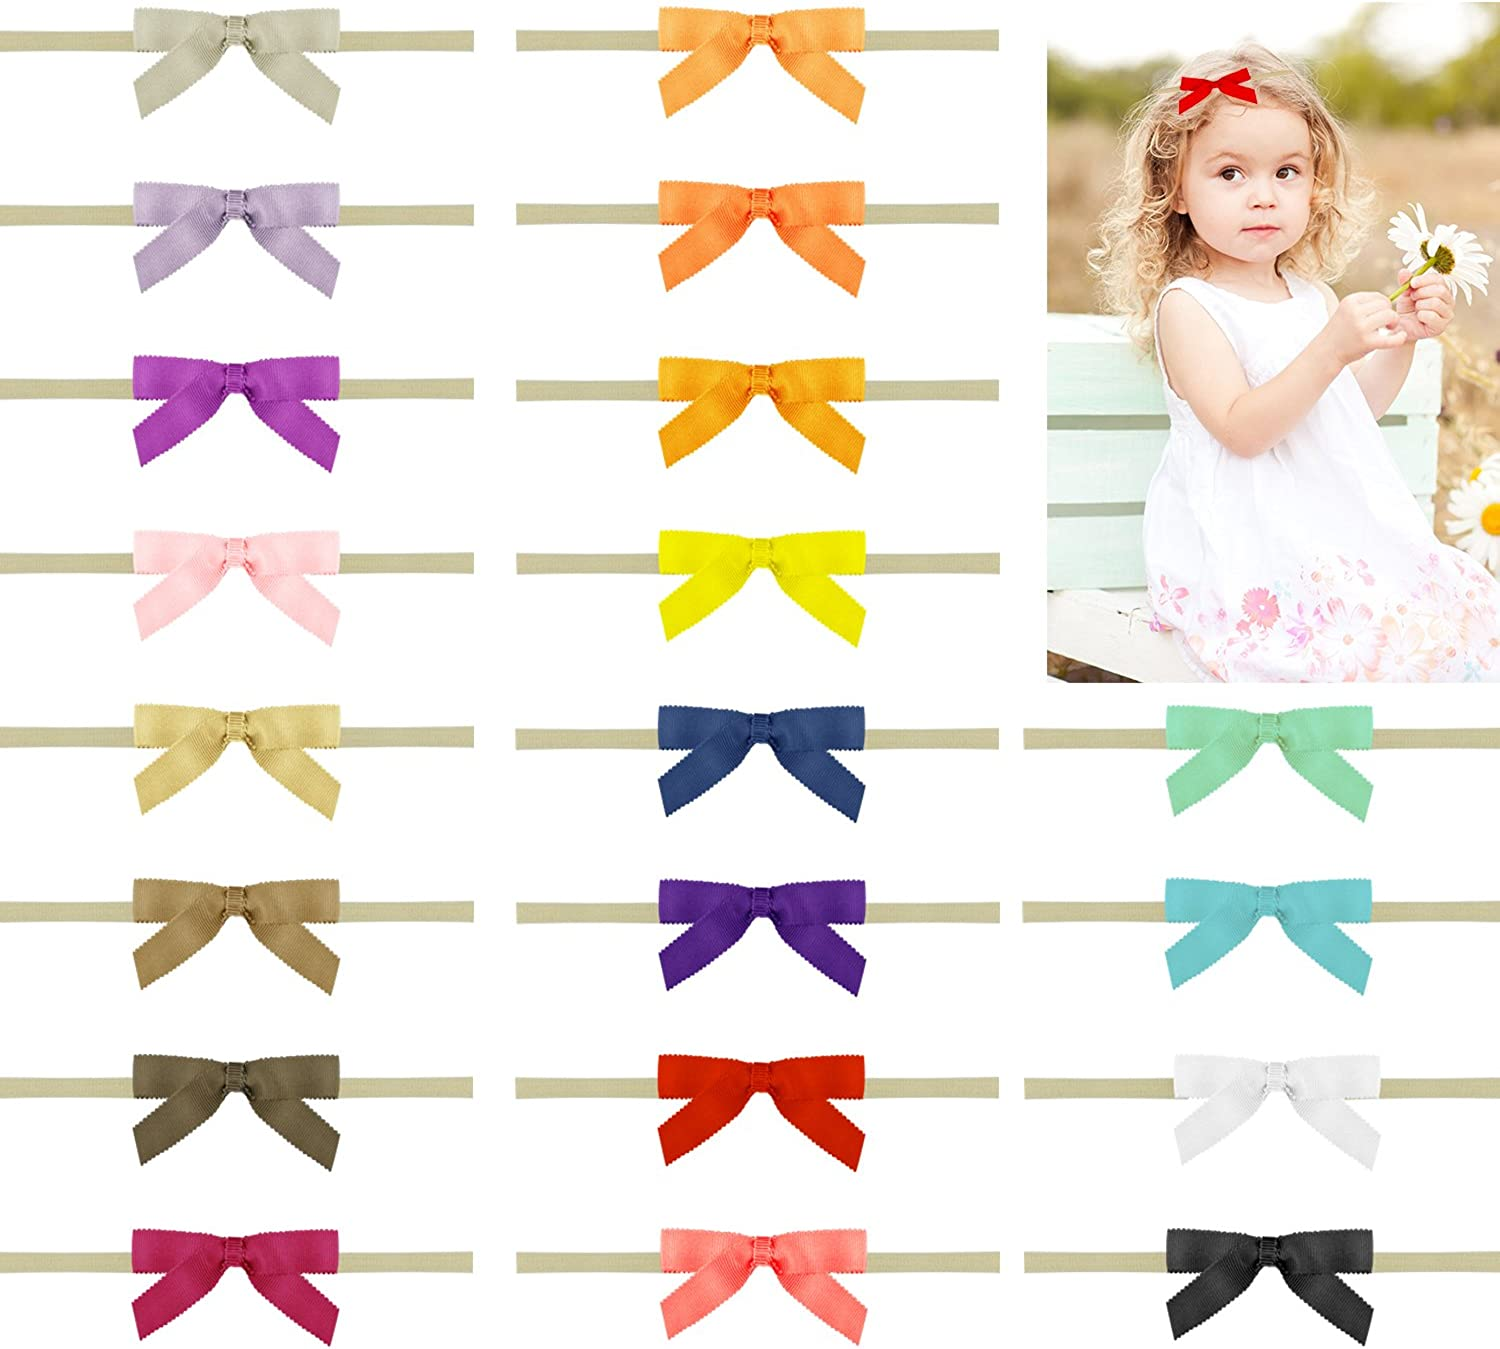 20pc baby headband infant bow girl hair accessories hair newborn gift US seller